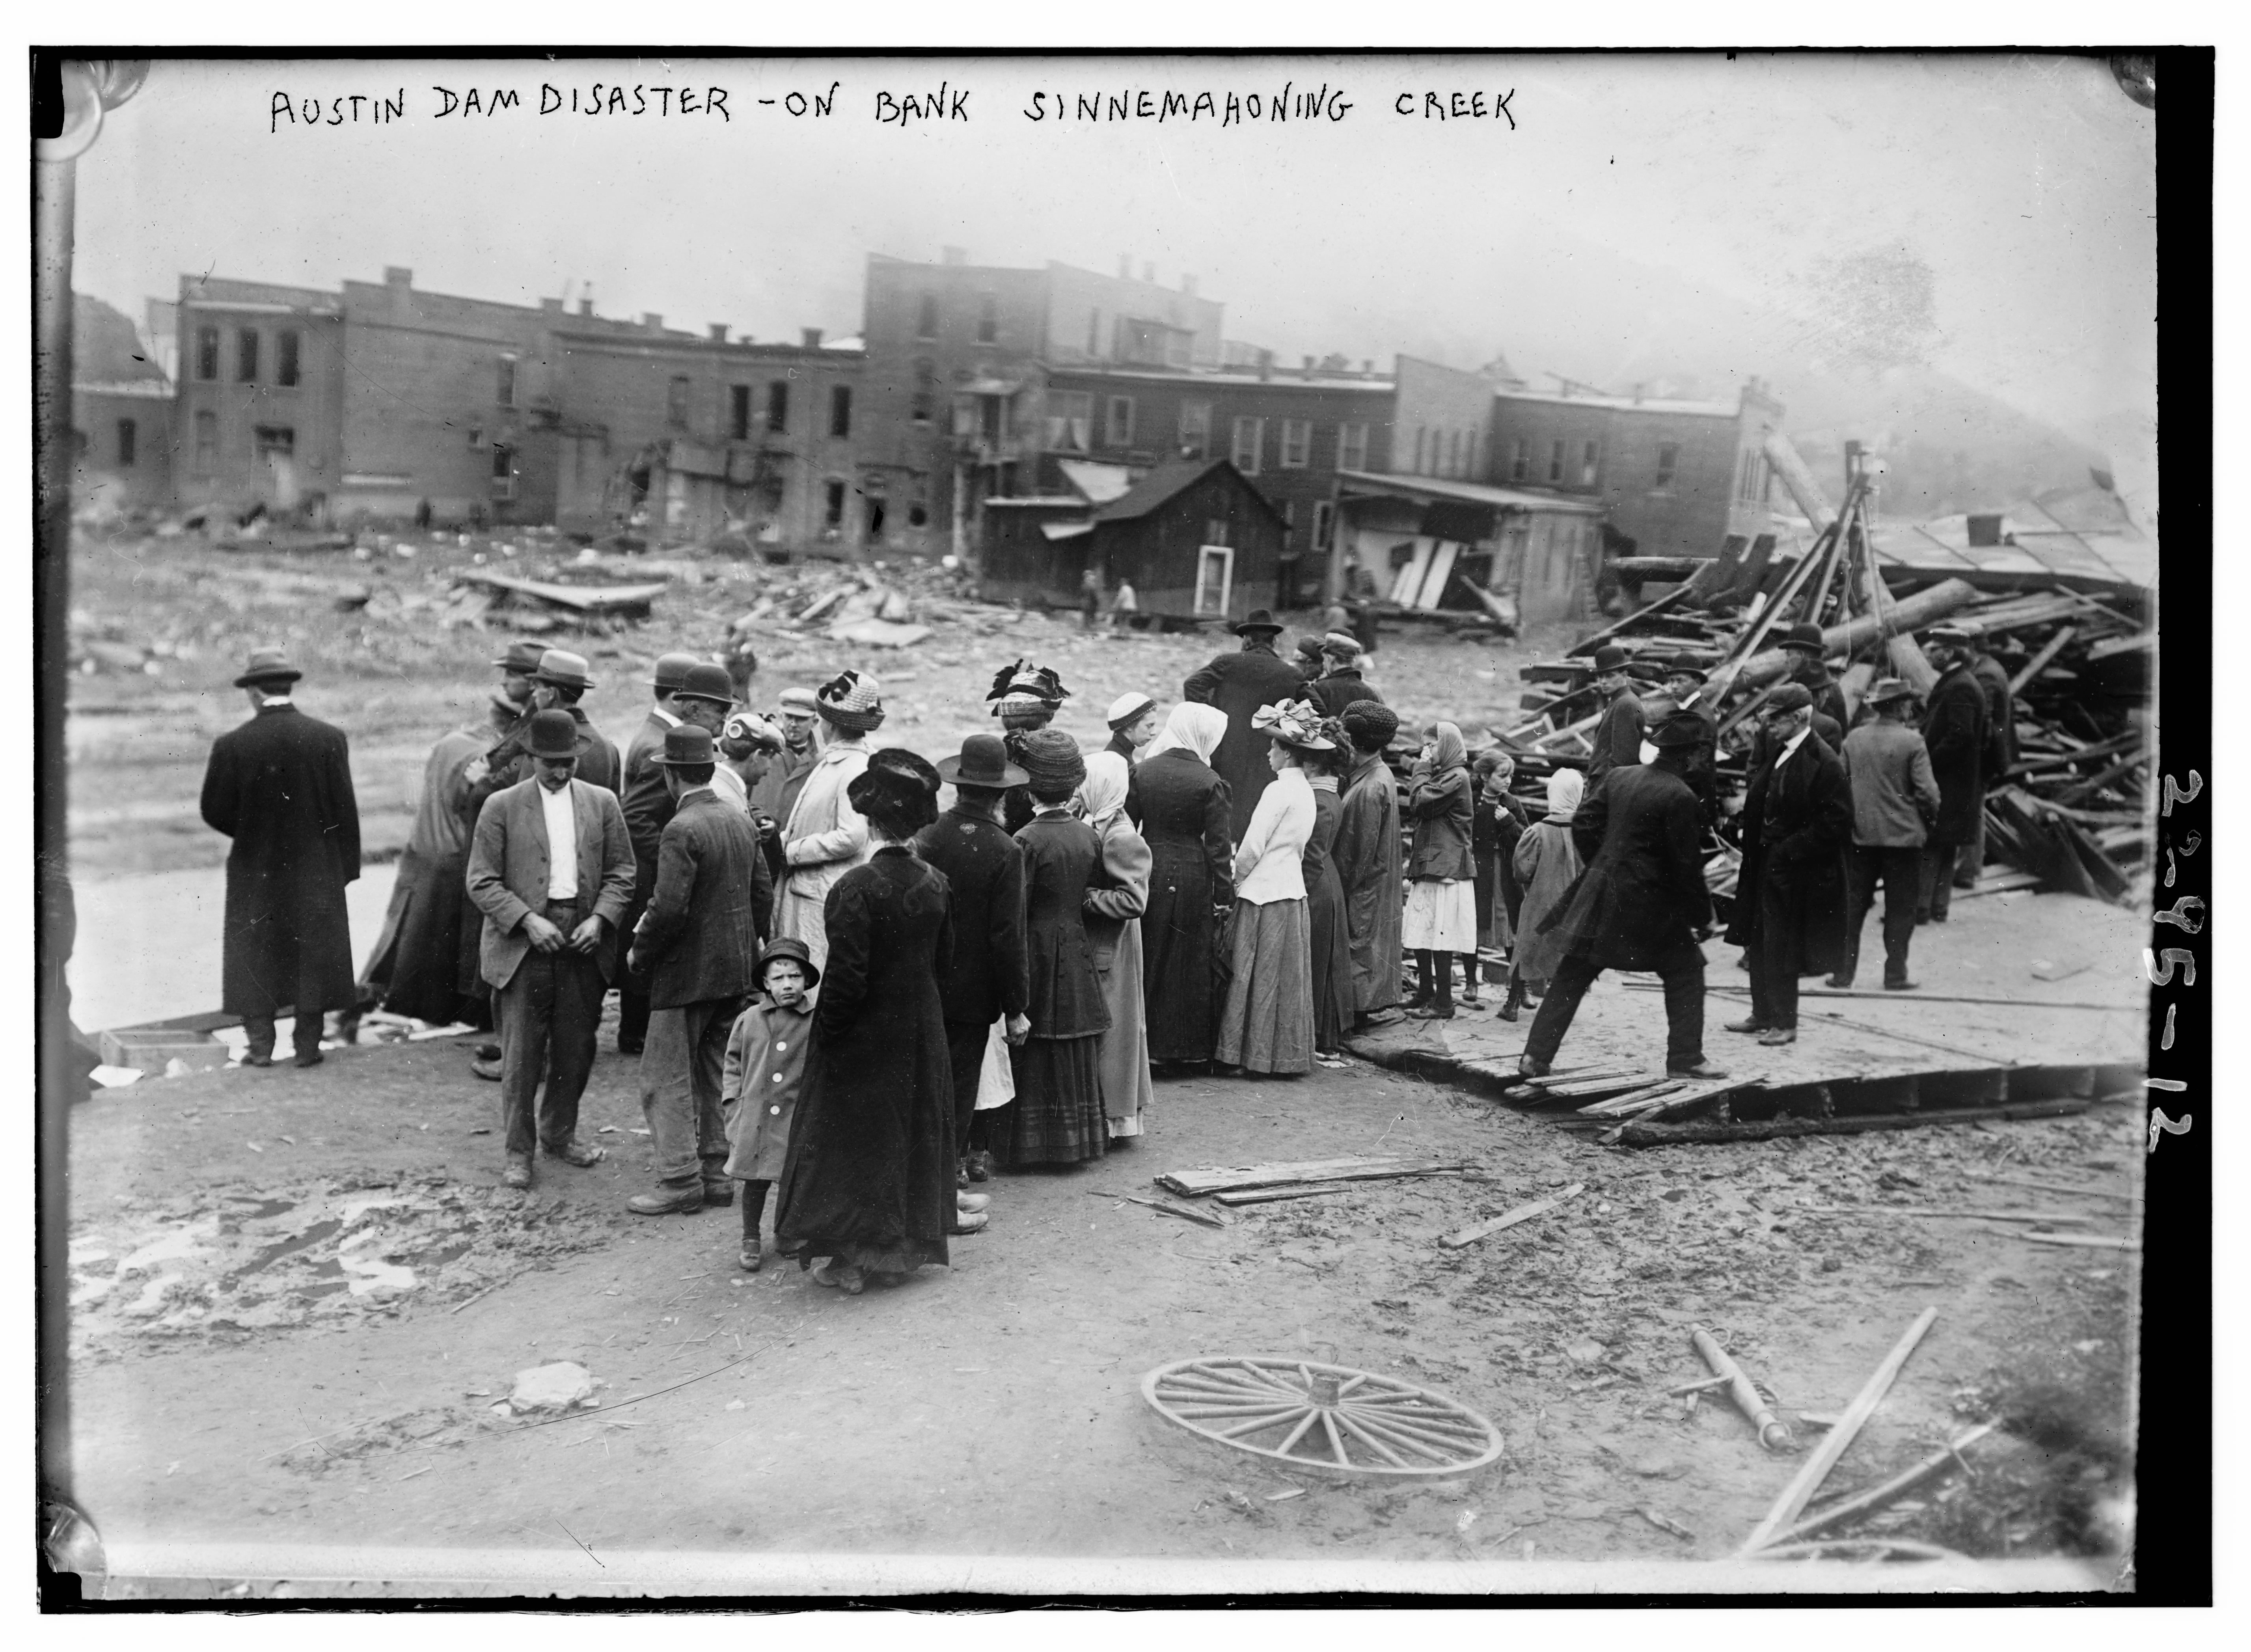 Onlookers survey damage in the aftermath of the Austin Flood